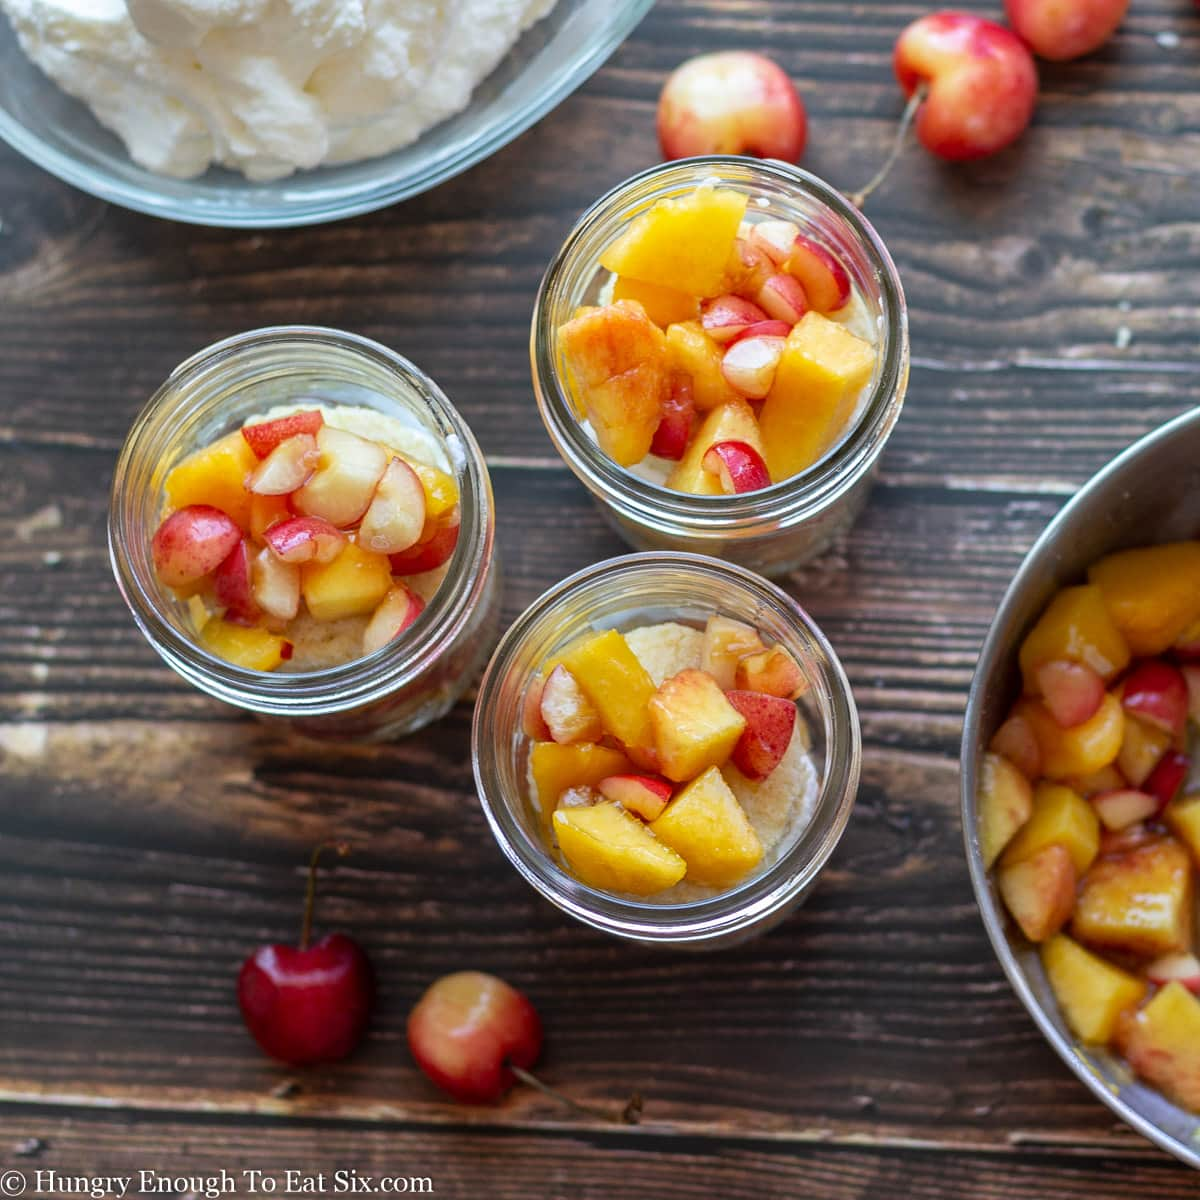 Glass jars holding diced nectarines and cherries with cherries on table.